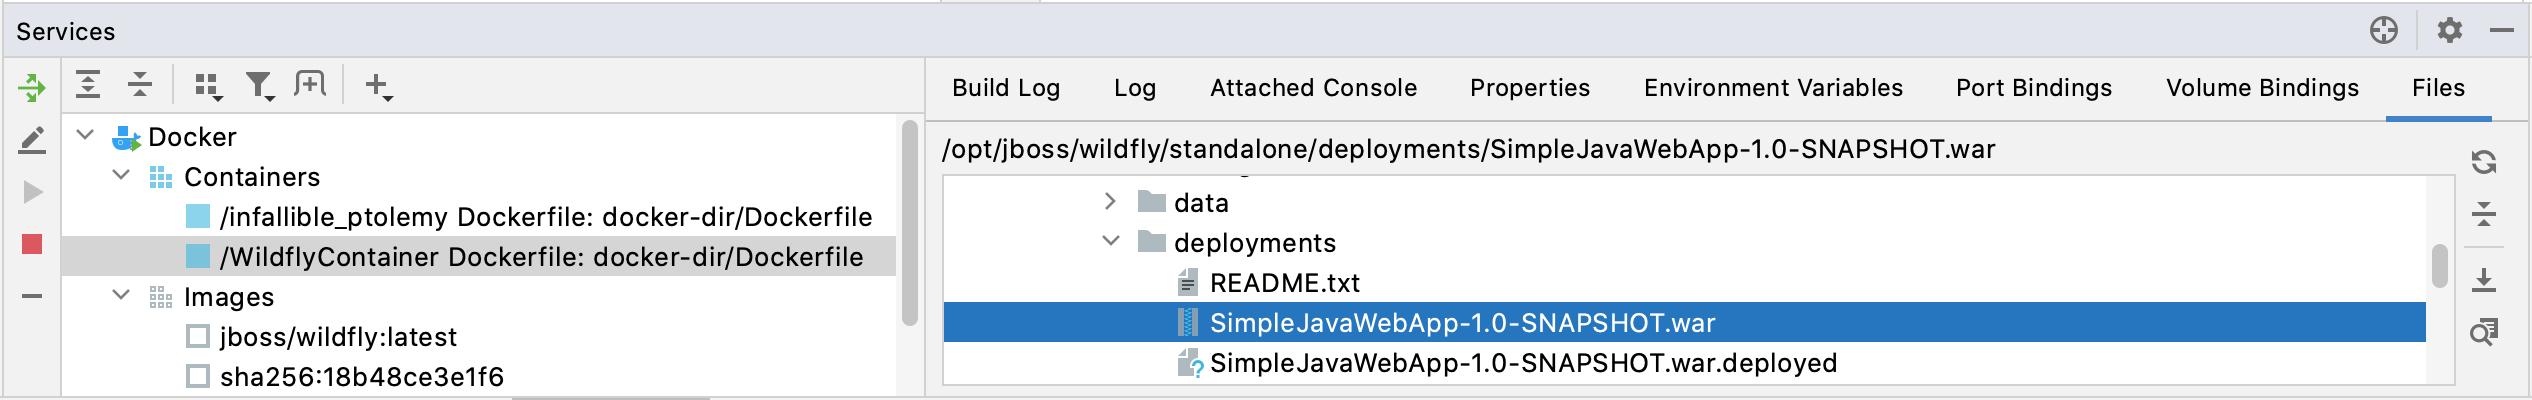 Services tool window with running Wildfly container and deployed Java app